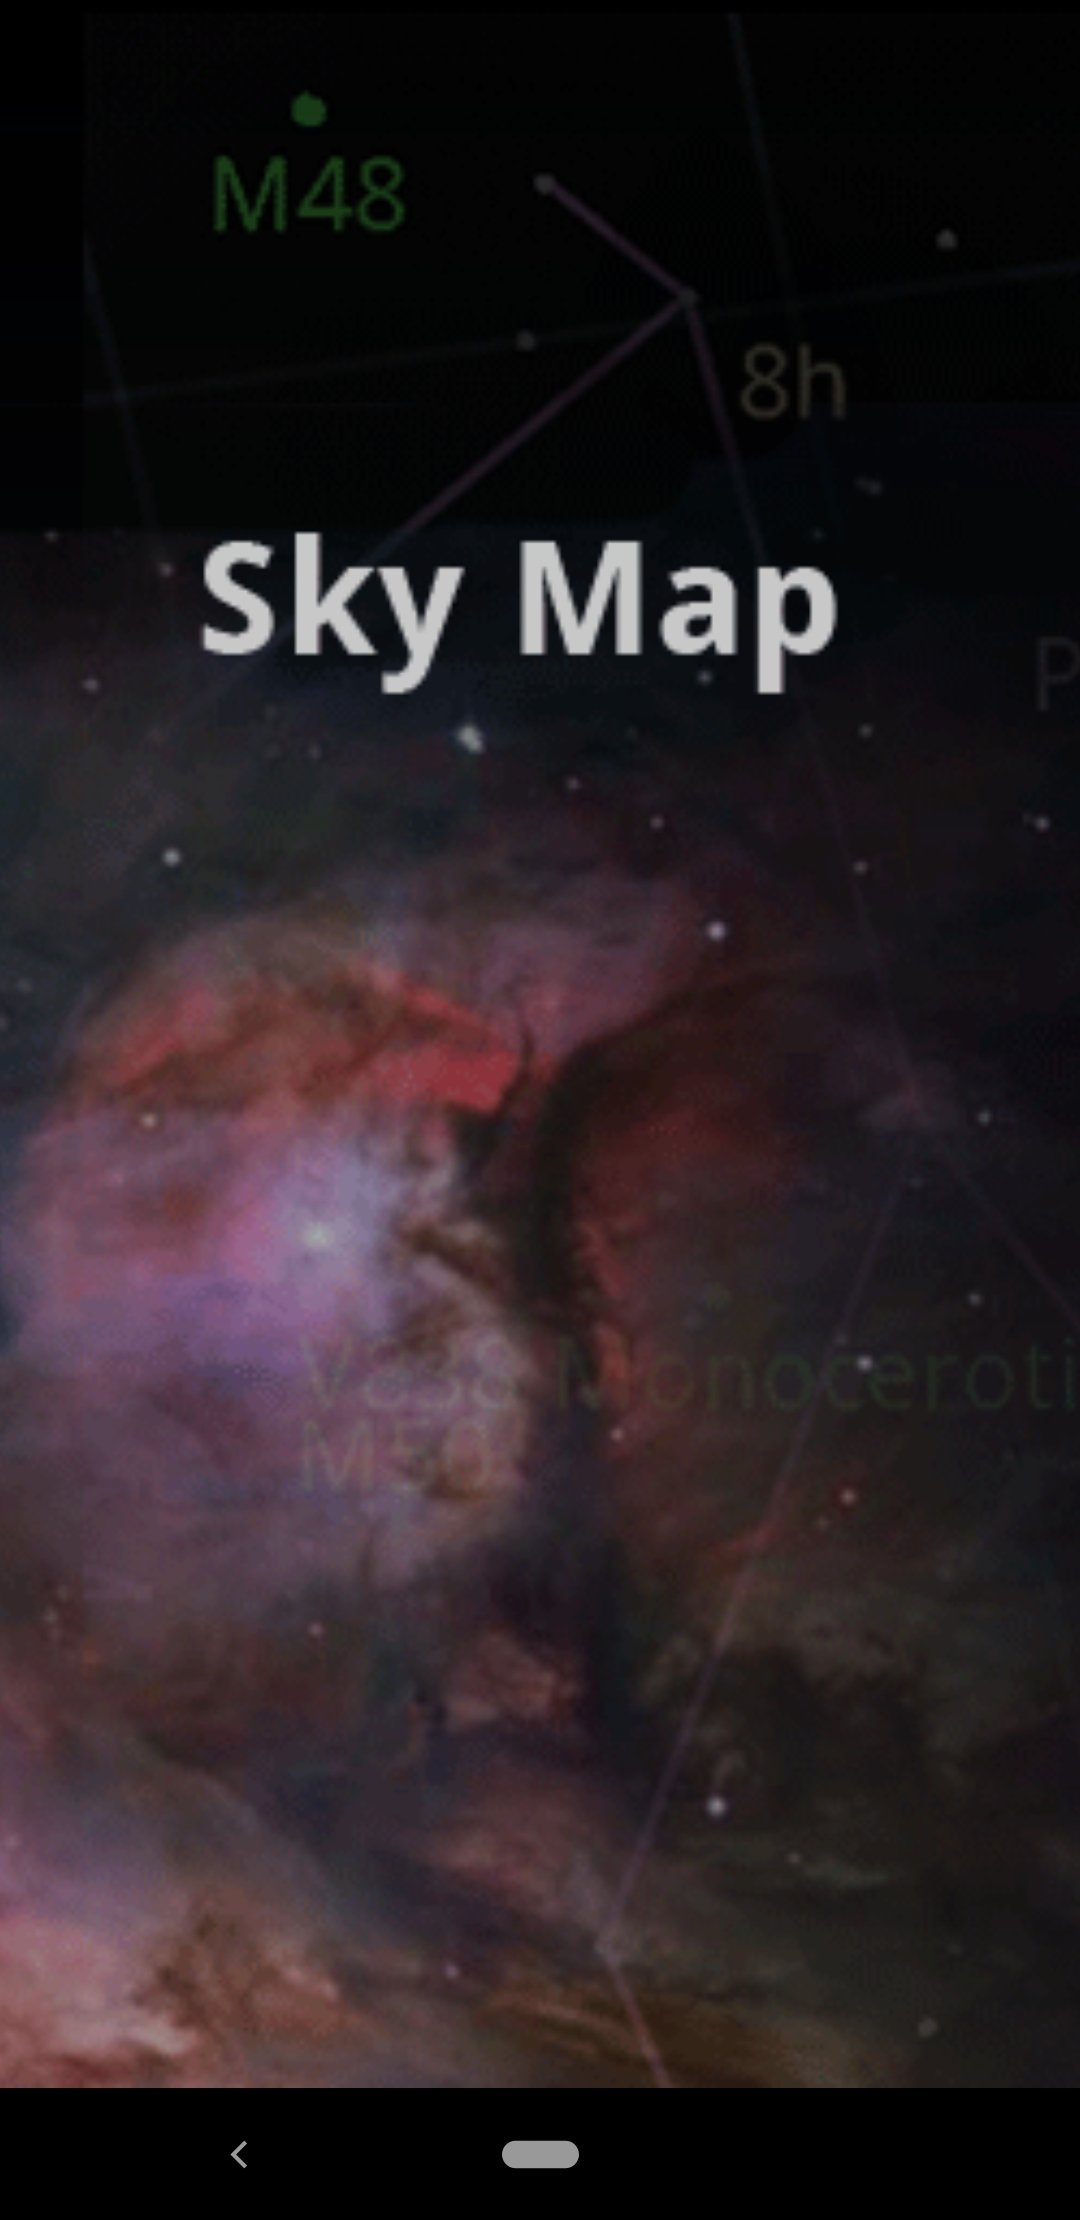 Google Sky Map Android image 6